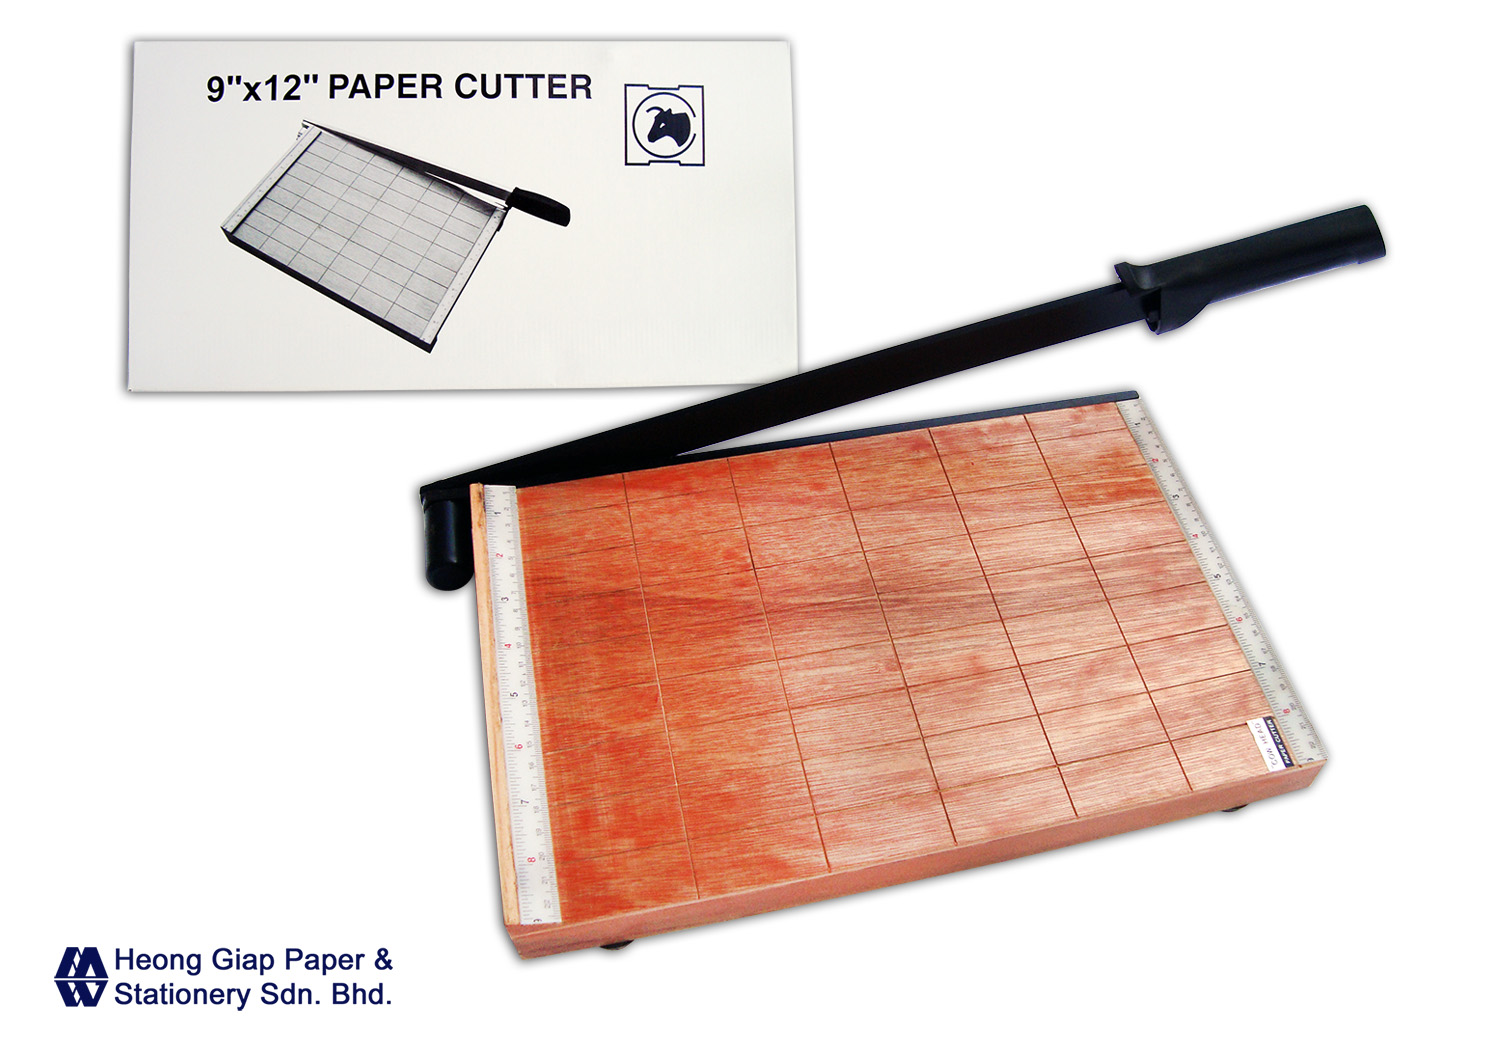 where can you buy a paper cutter